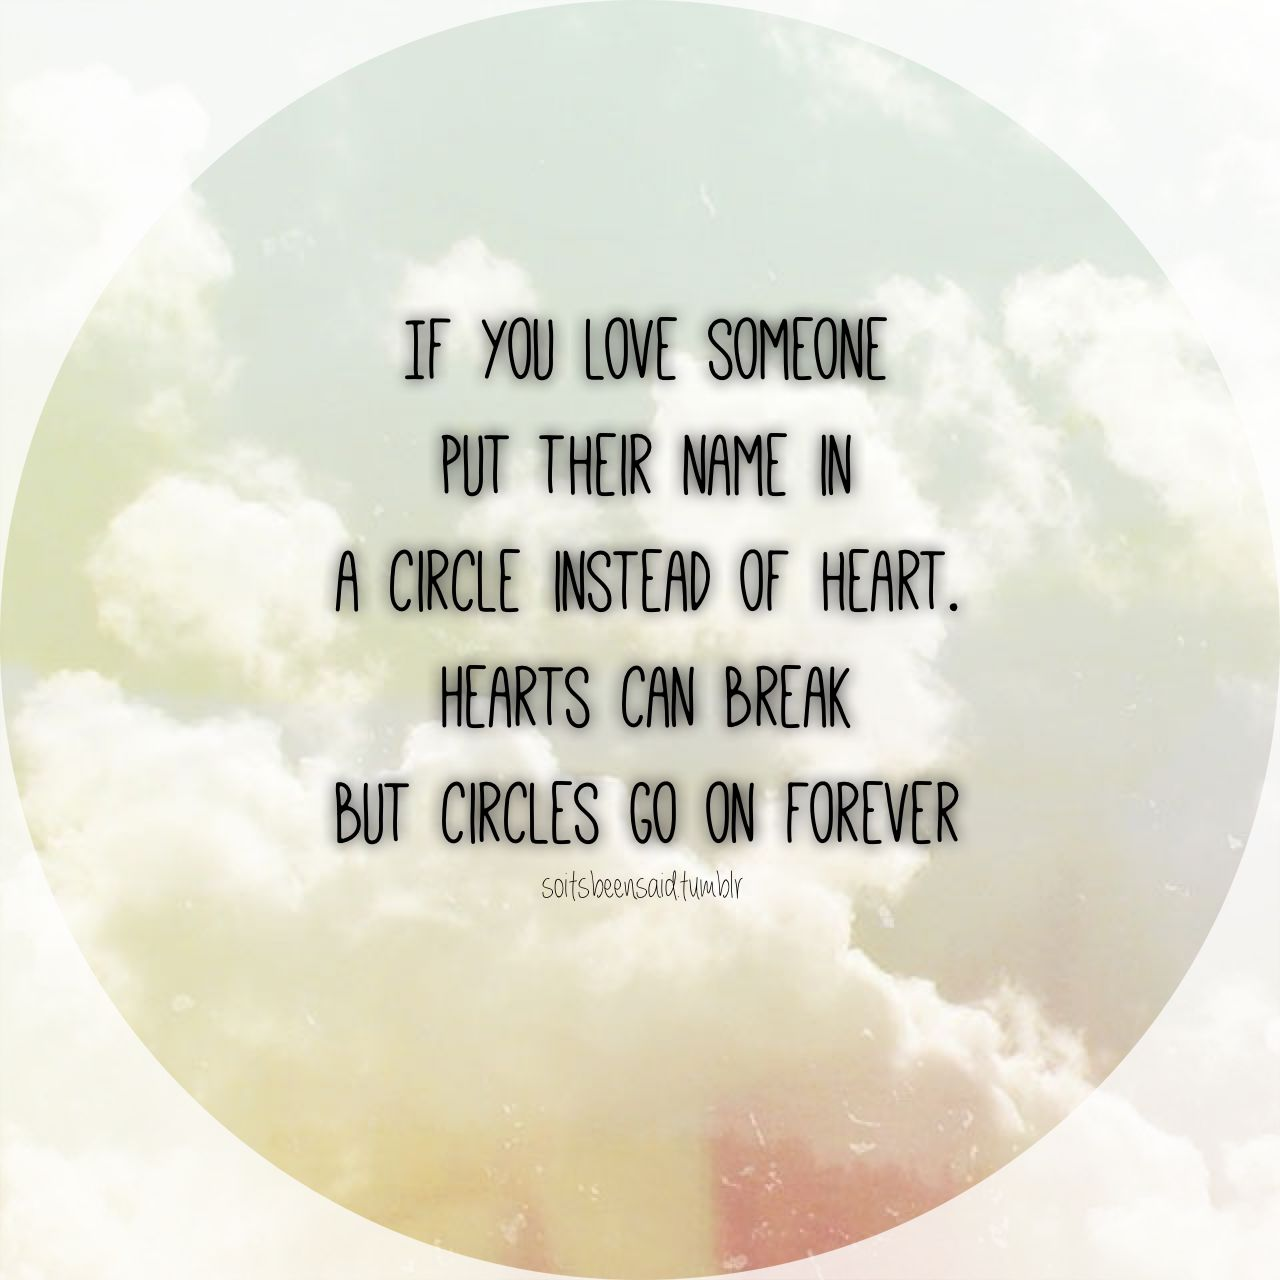 If you love someone put their name in a circle instead of a heart Hearts can break but circles go on forever